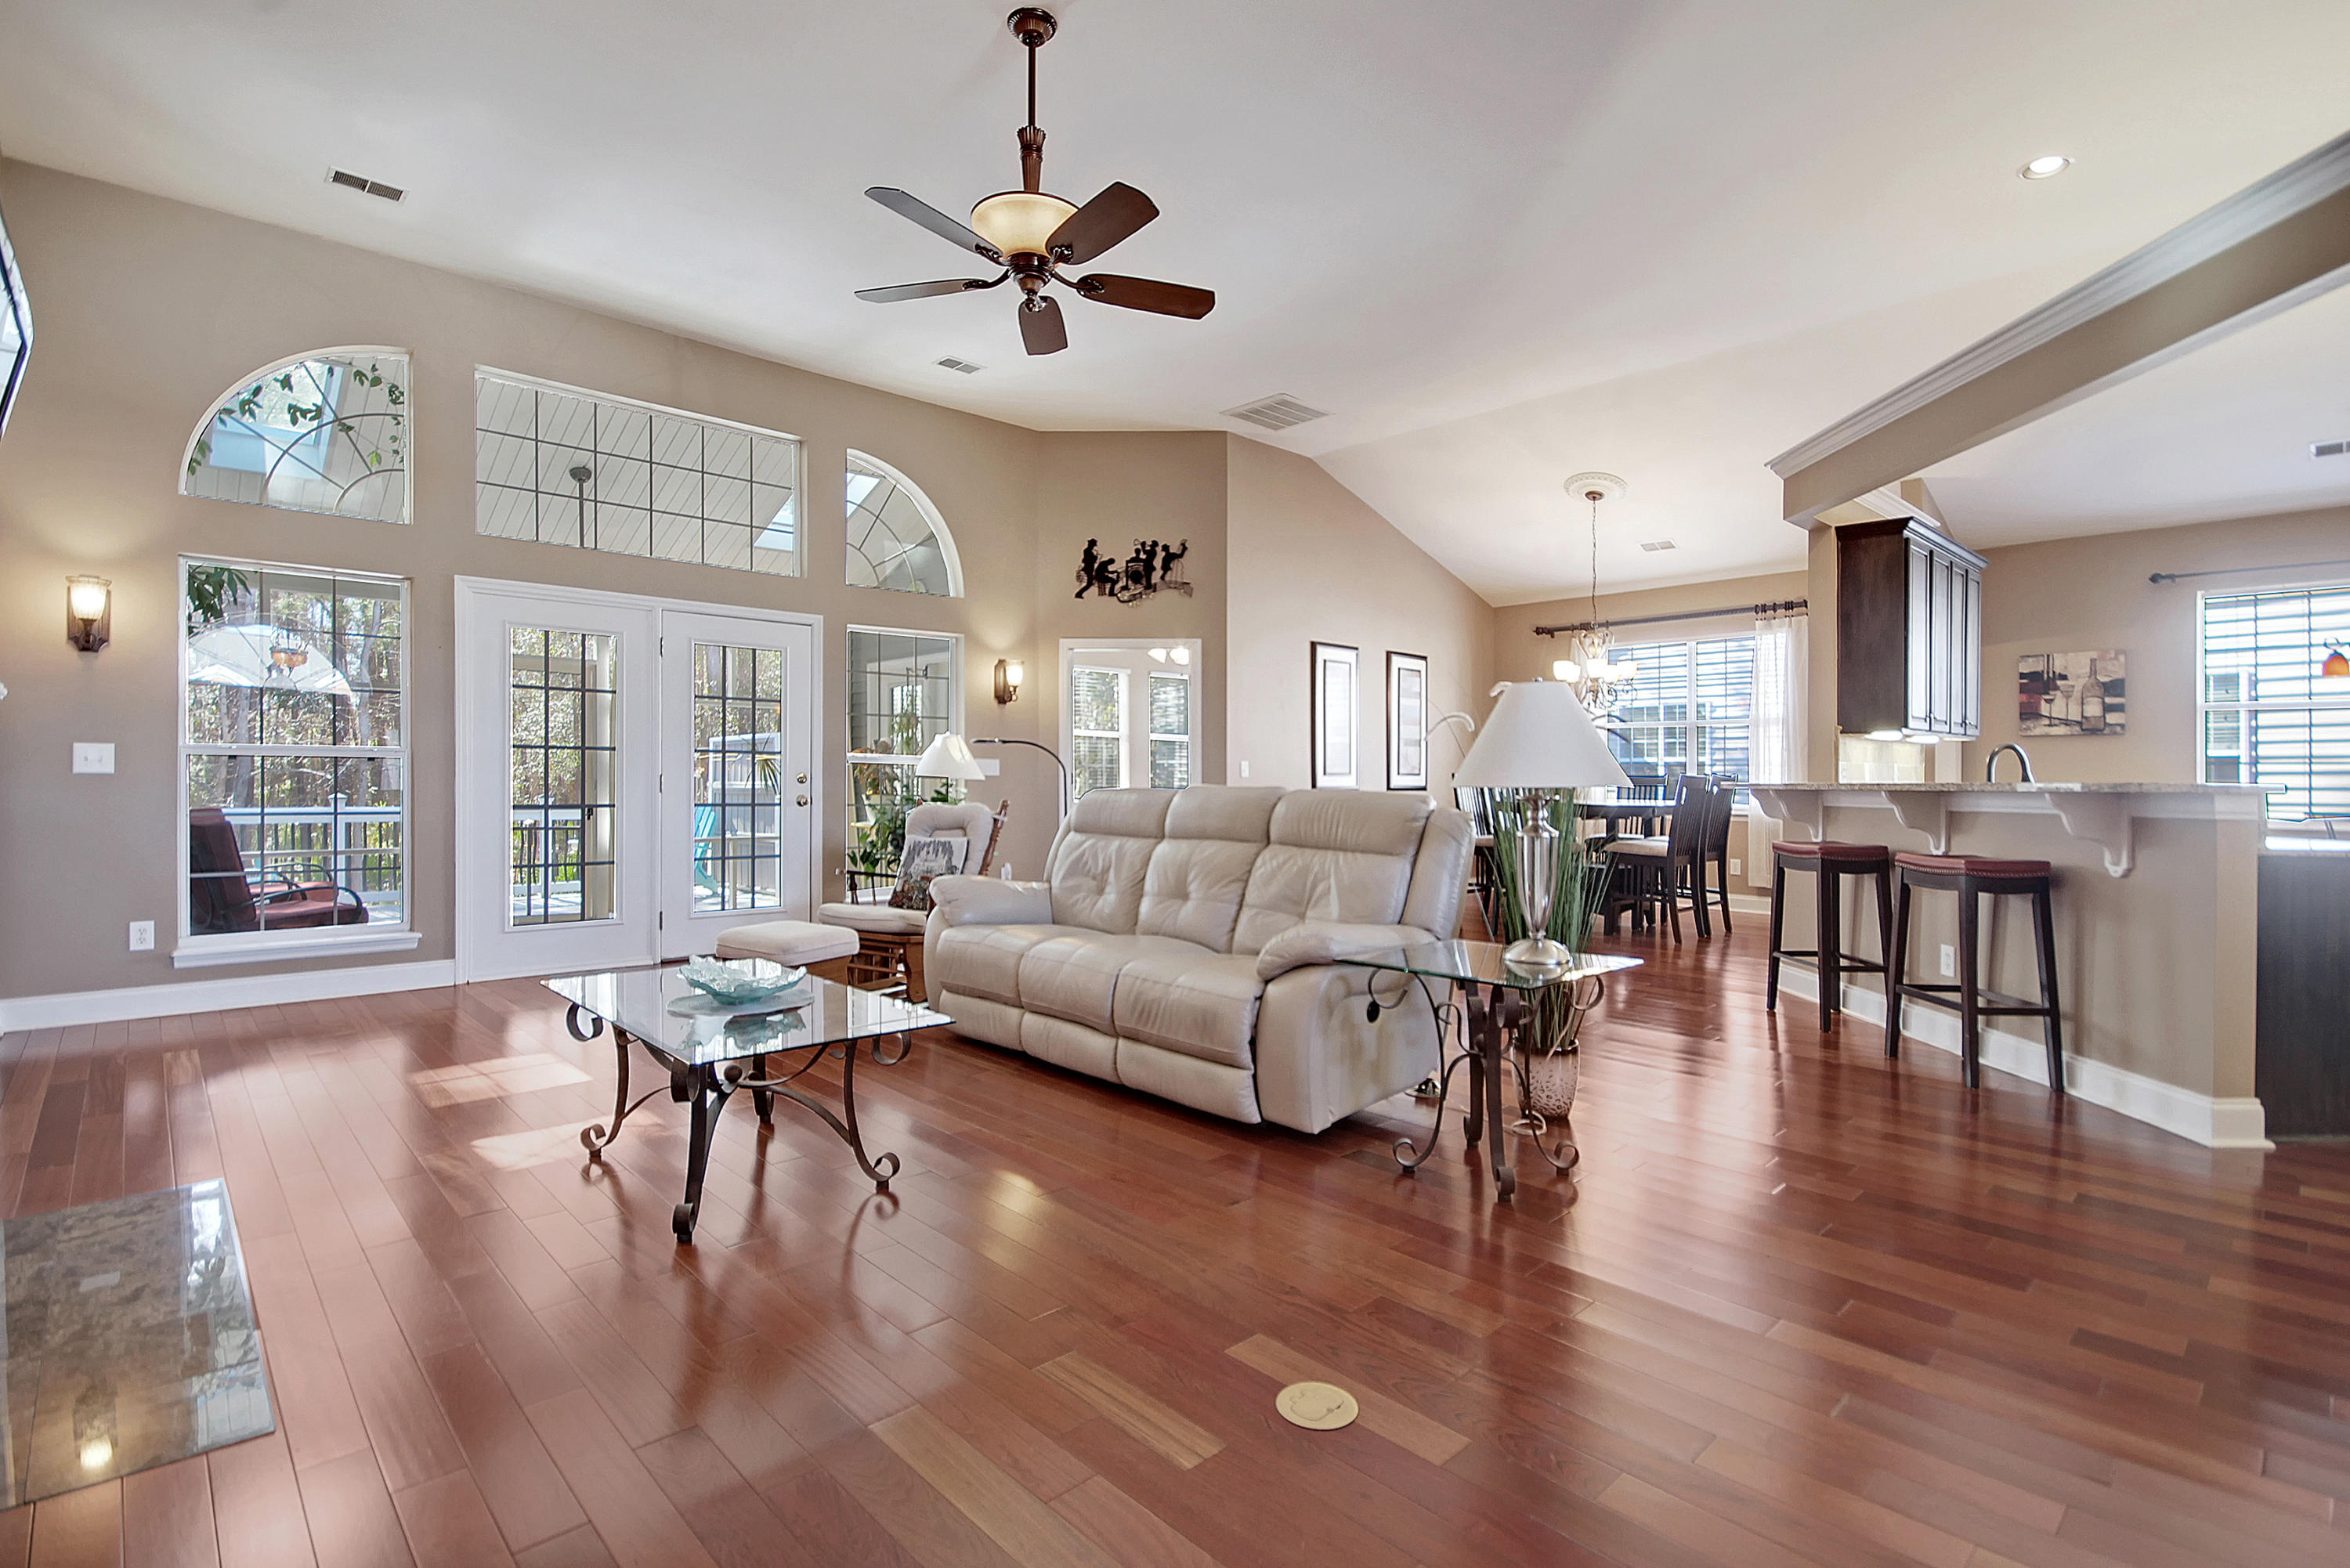 Rivertowne Country Club Homes For Sale - 1868 Great Hope, Mount Pleasant, SC - 23